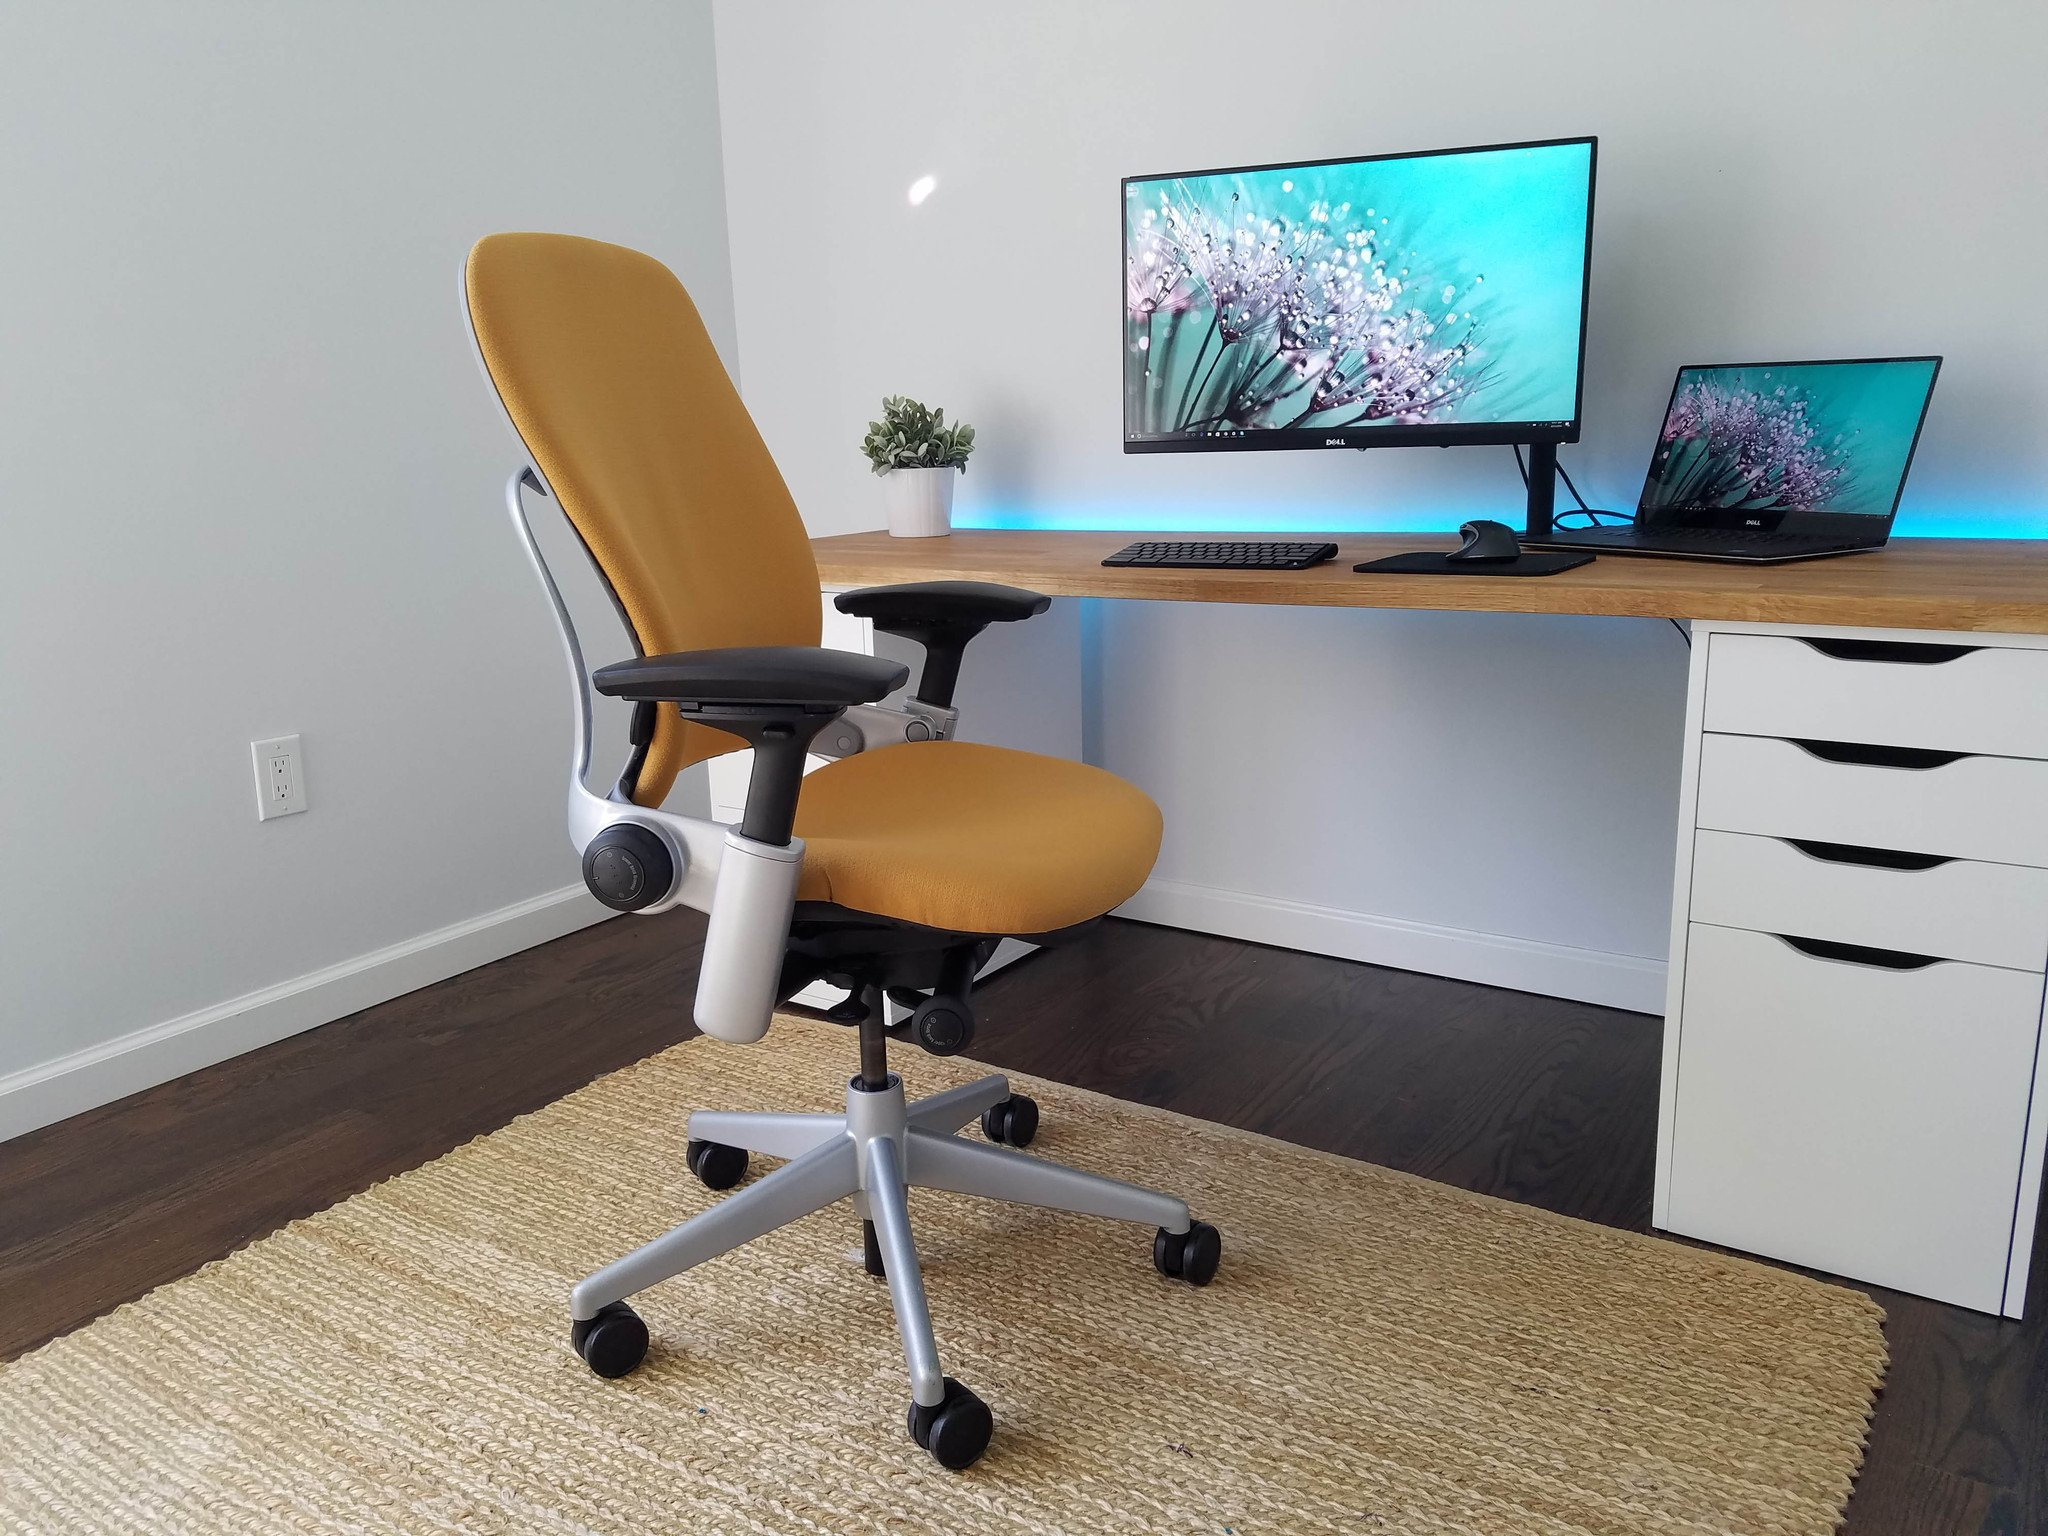 Best Office Chairs for Home and Work  Windows Central